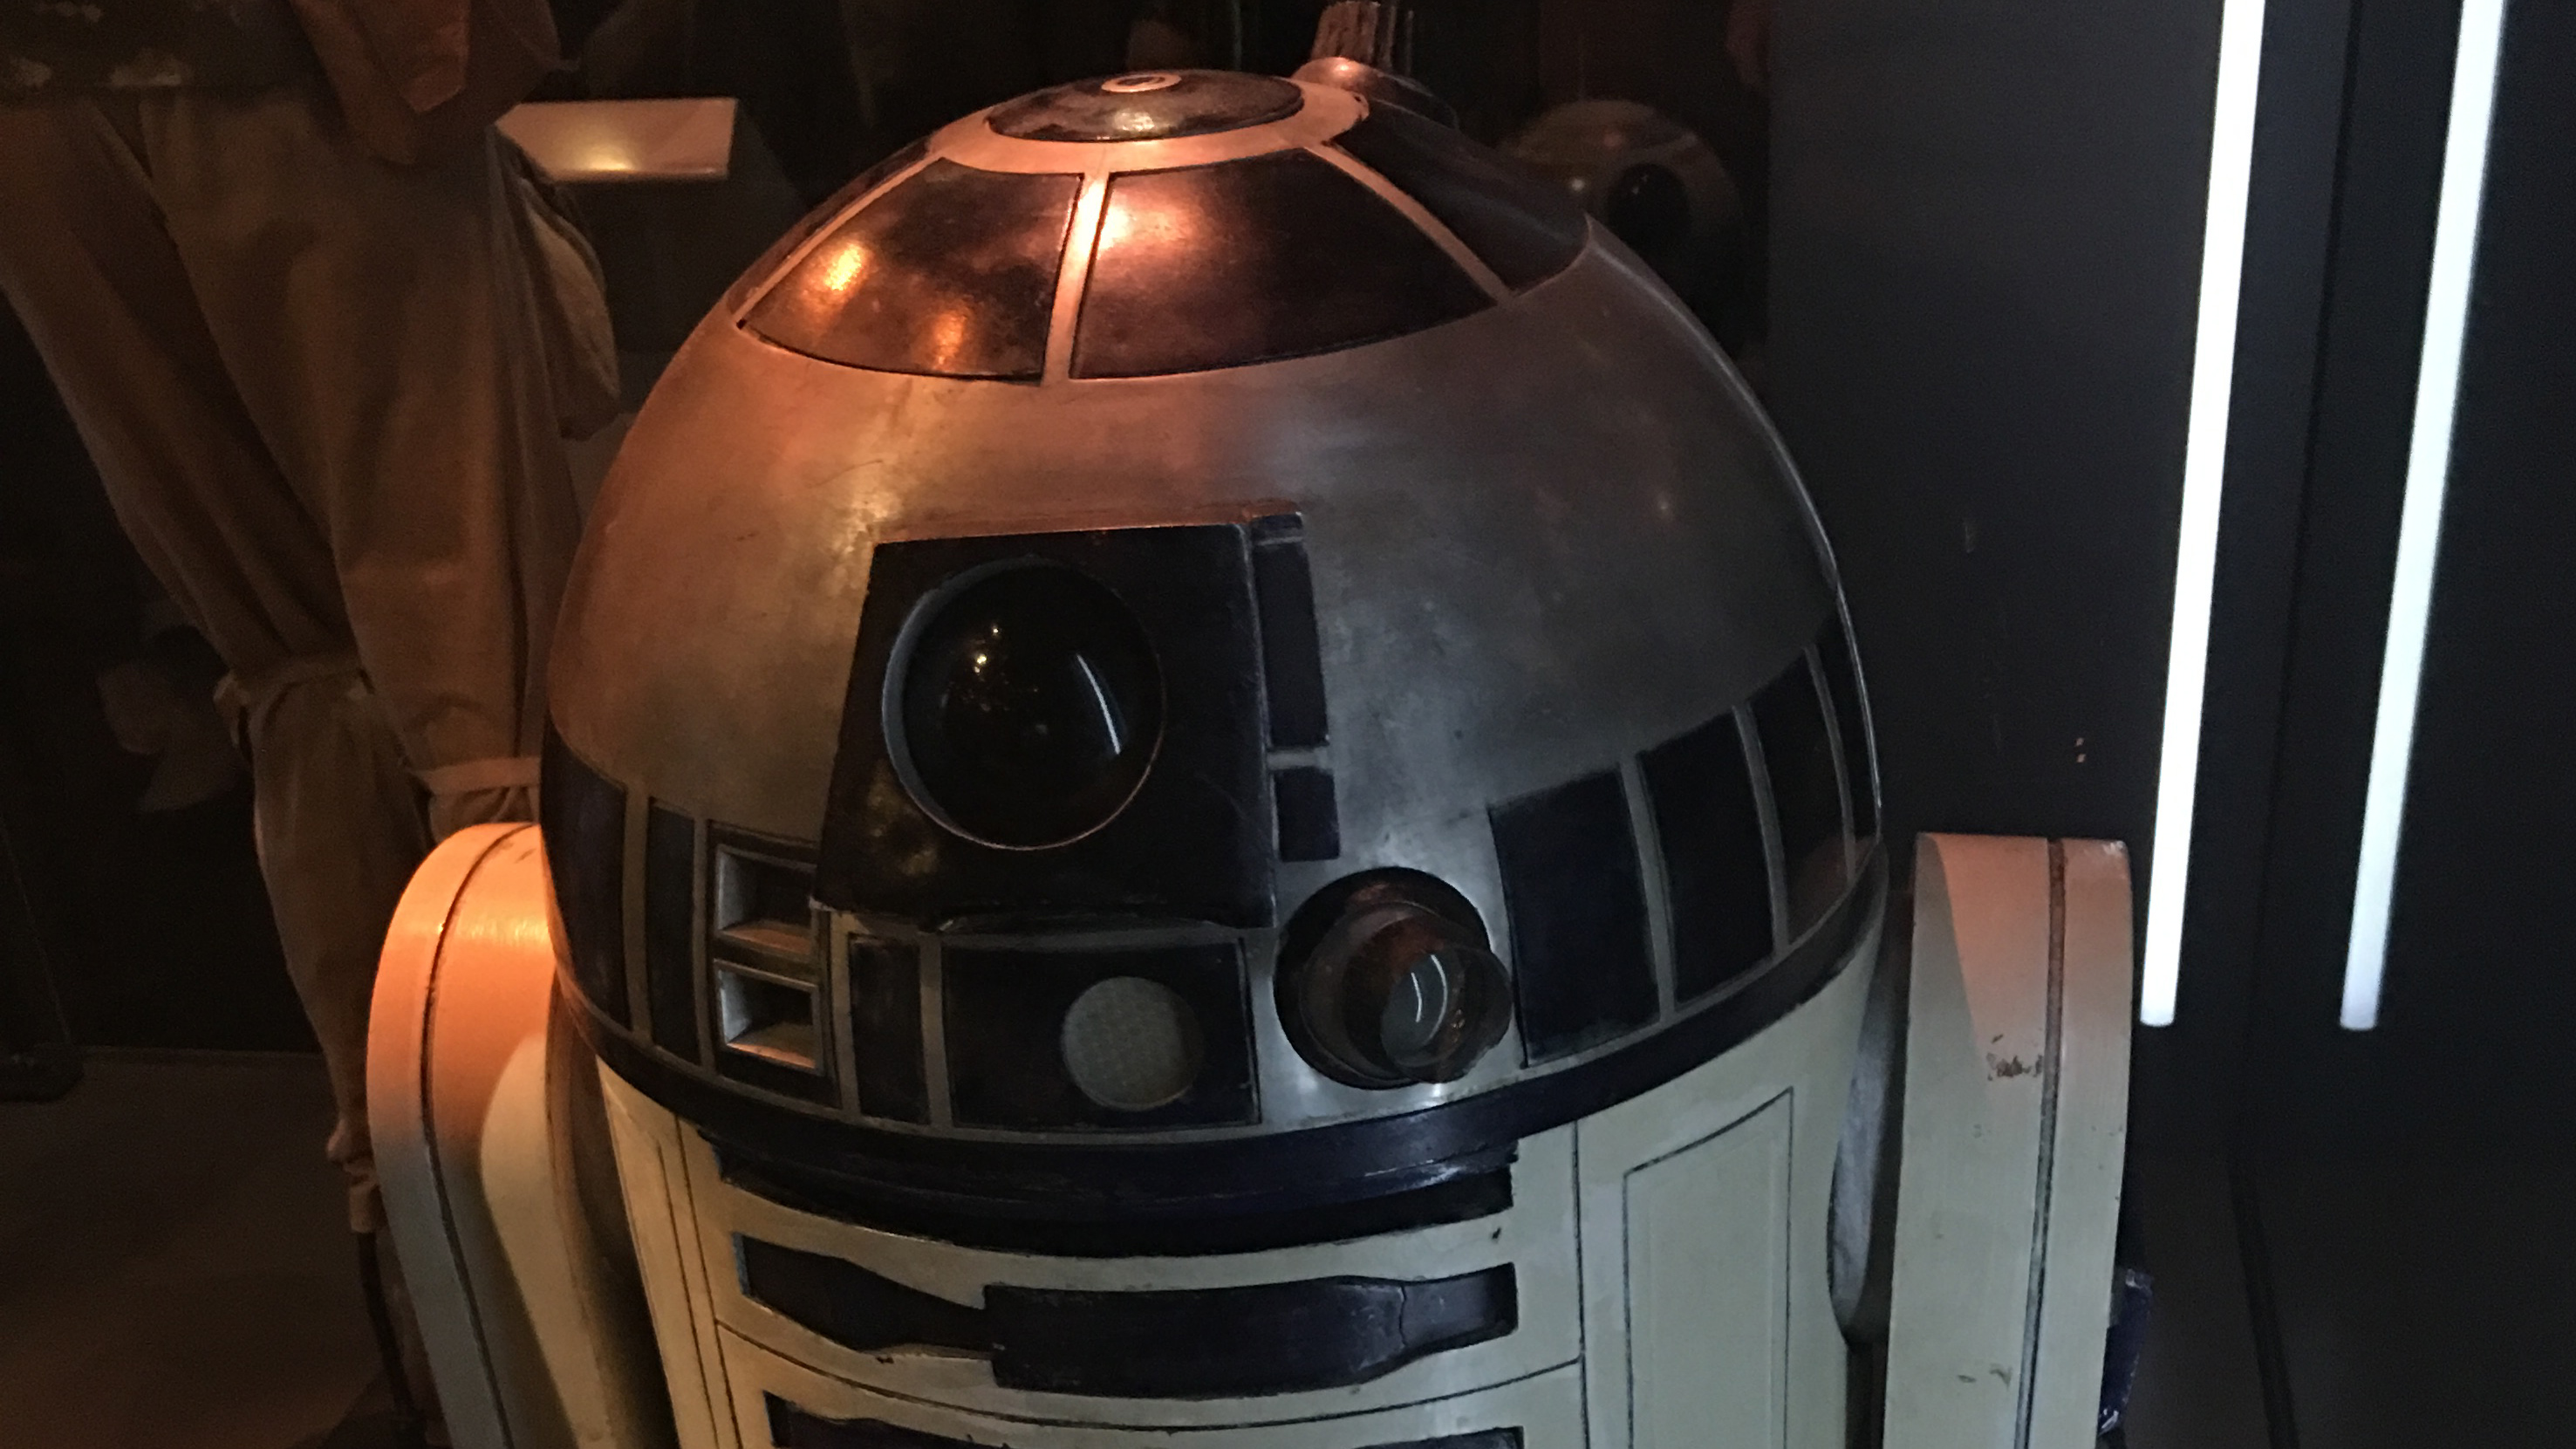 R2D2 - should not be able to fly